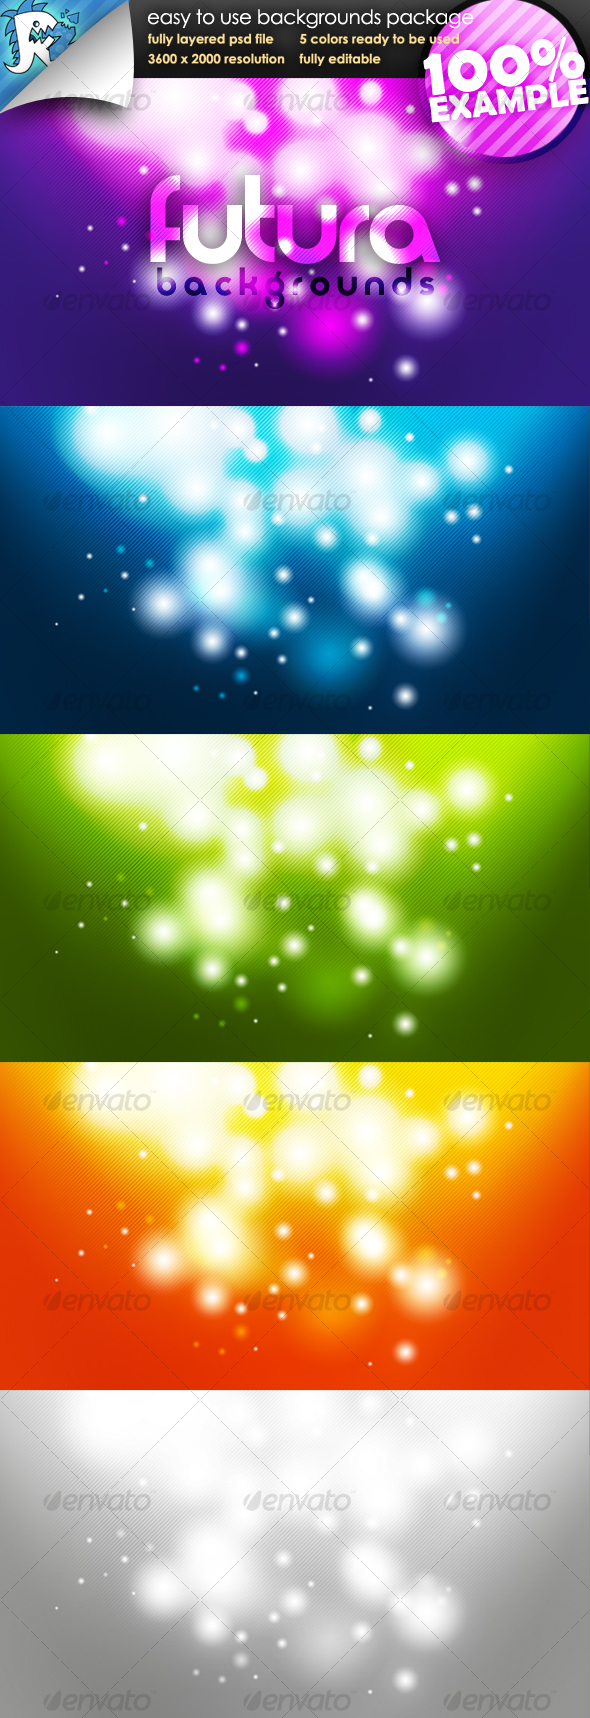 GraphicRiver Futura Glow Easy to use Backgrounds 112849